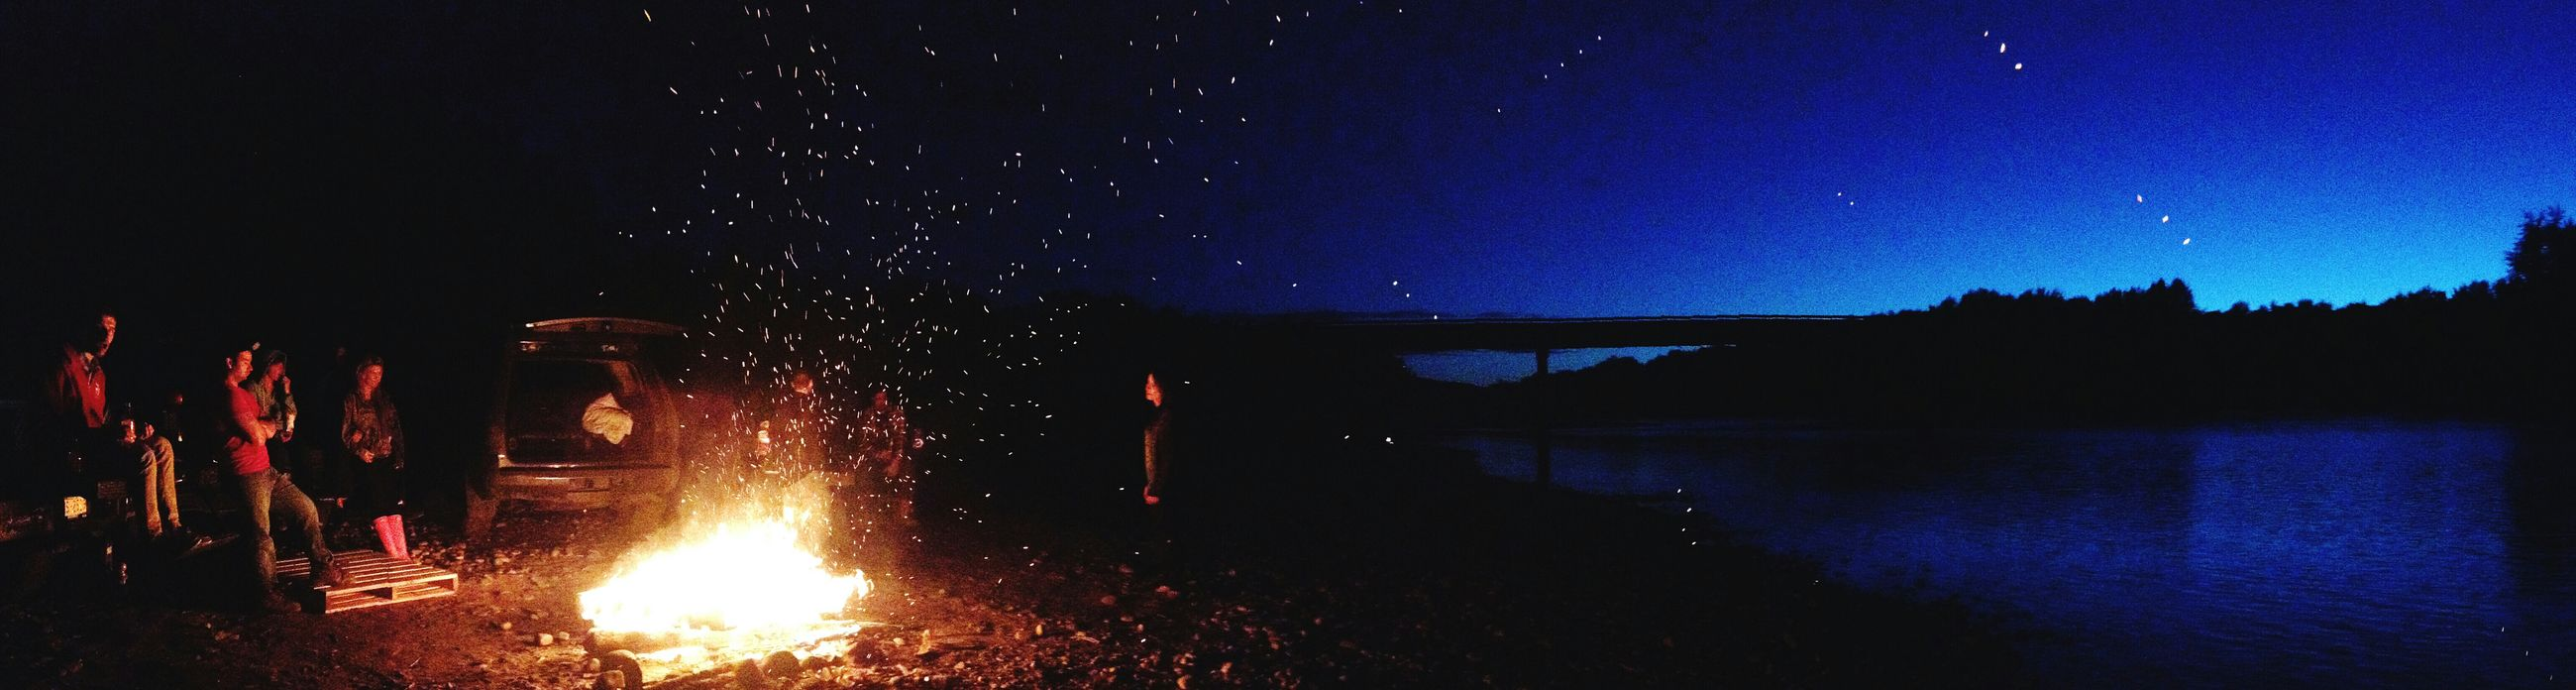 night, illuminated, star - space, star field, scenics, sky, astronomy, glowing, dark, beauty in nature, tranquil scene, star, water, tranquility, long exposure, silhouette, galaxy, nature, idyllic, fire - natural phenomenon